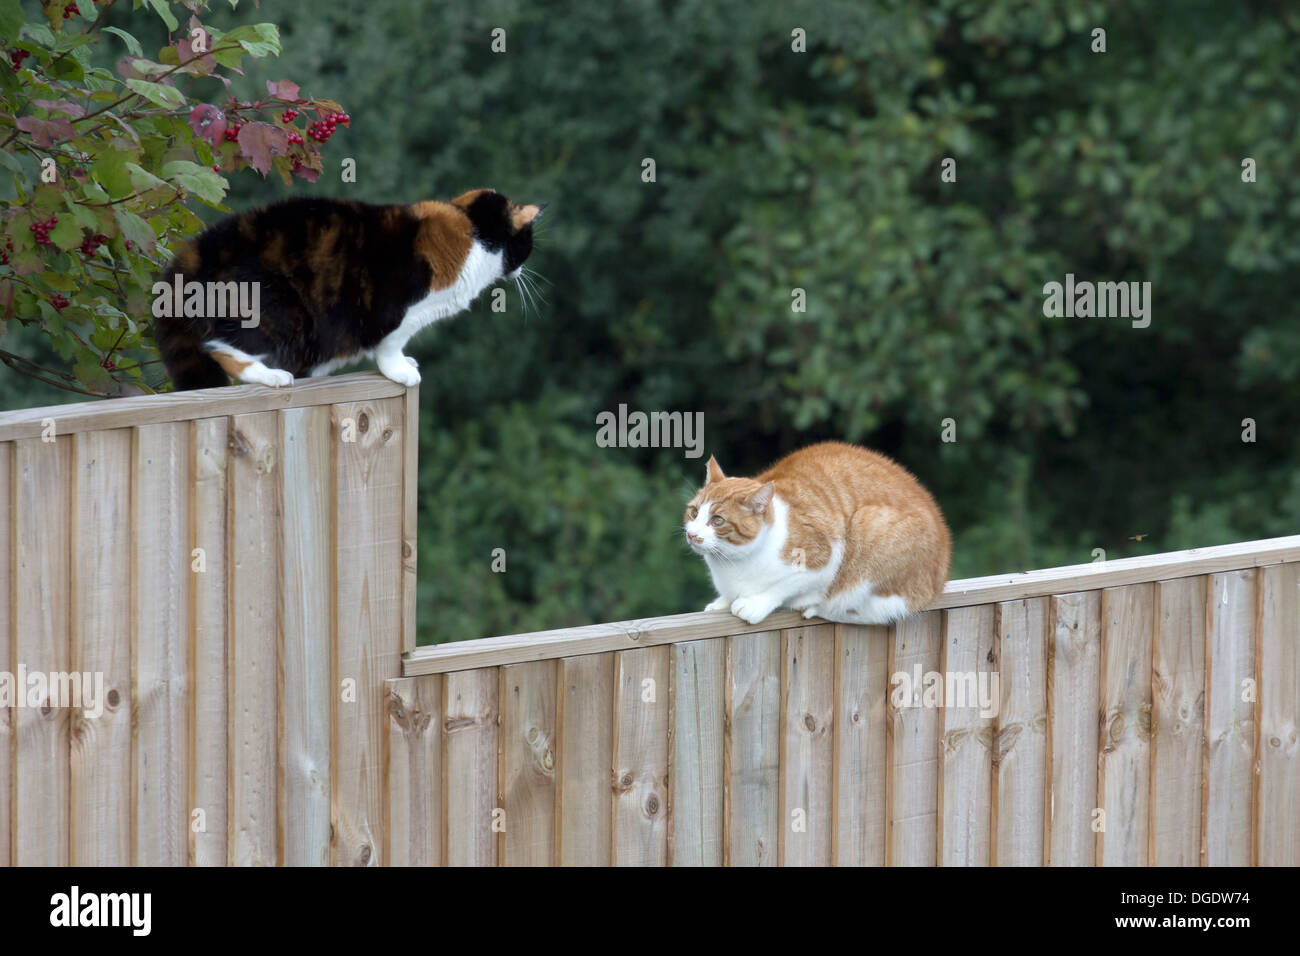 TWO CATS FACE OFF ON A FENCE - Stock Image